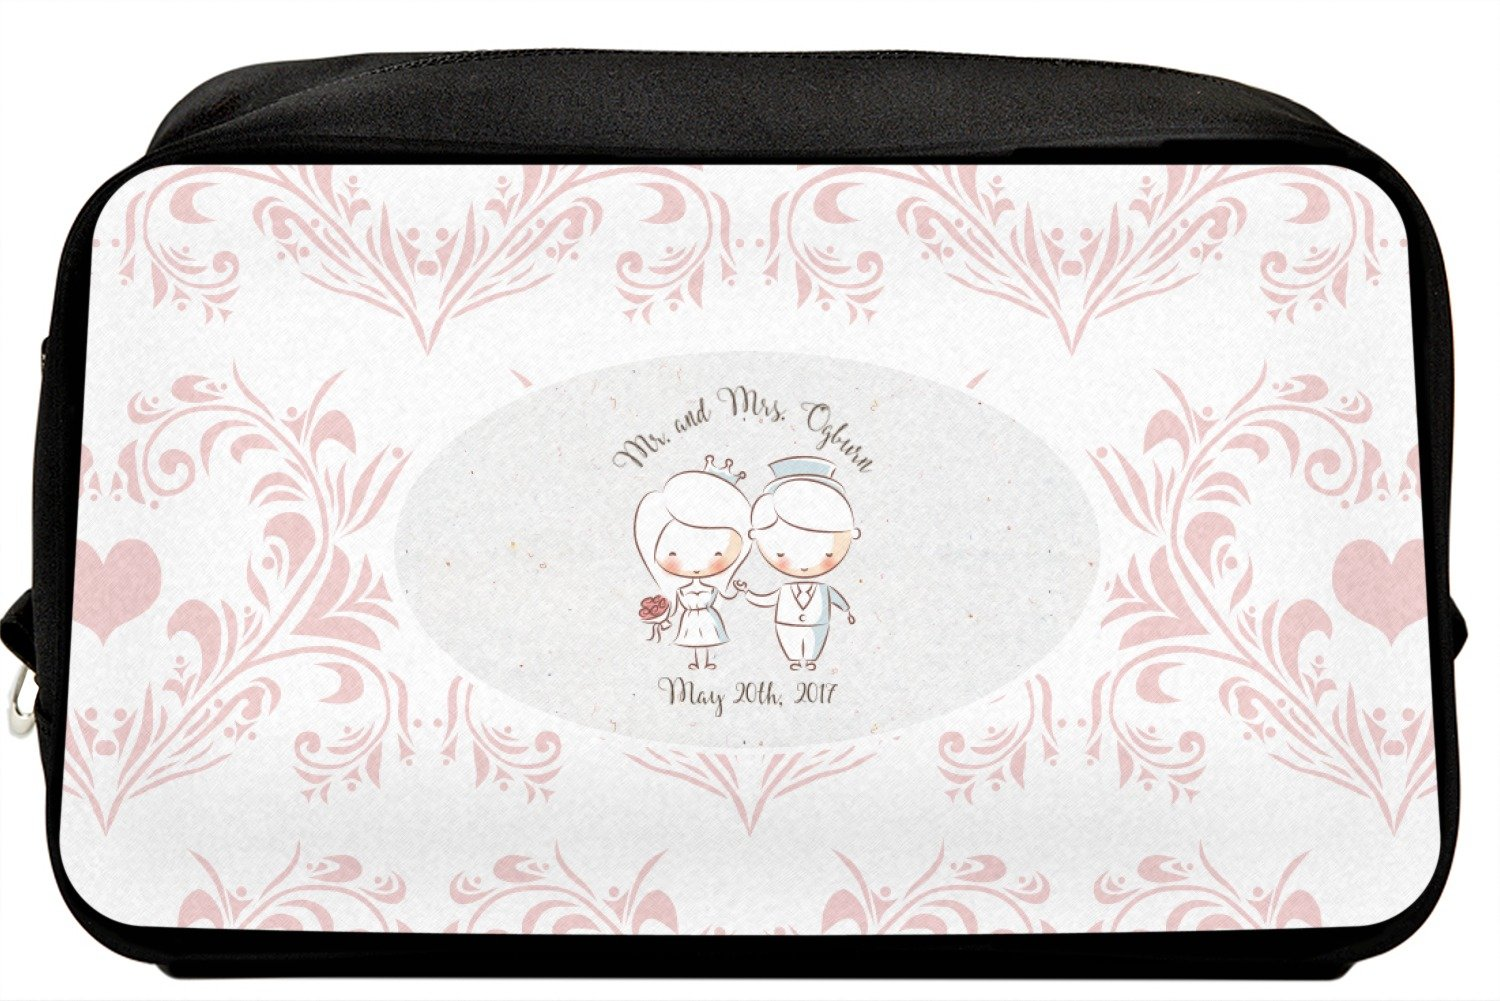 Wedding People Toiletry Bag/Dopp Kit (Personalized)